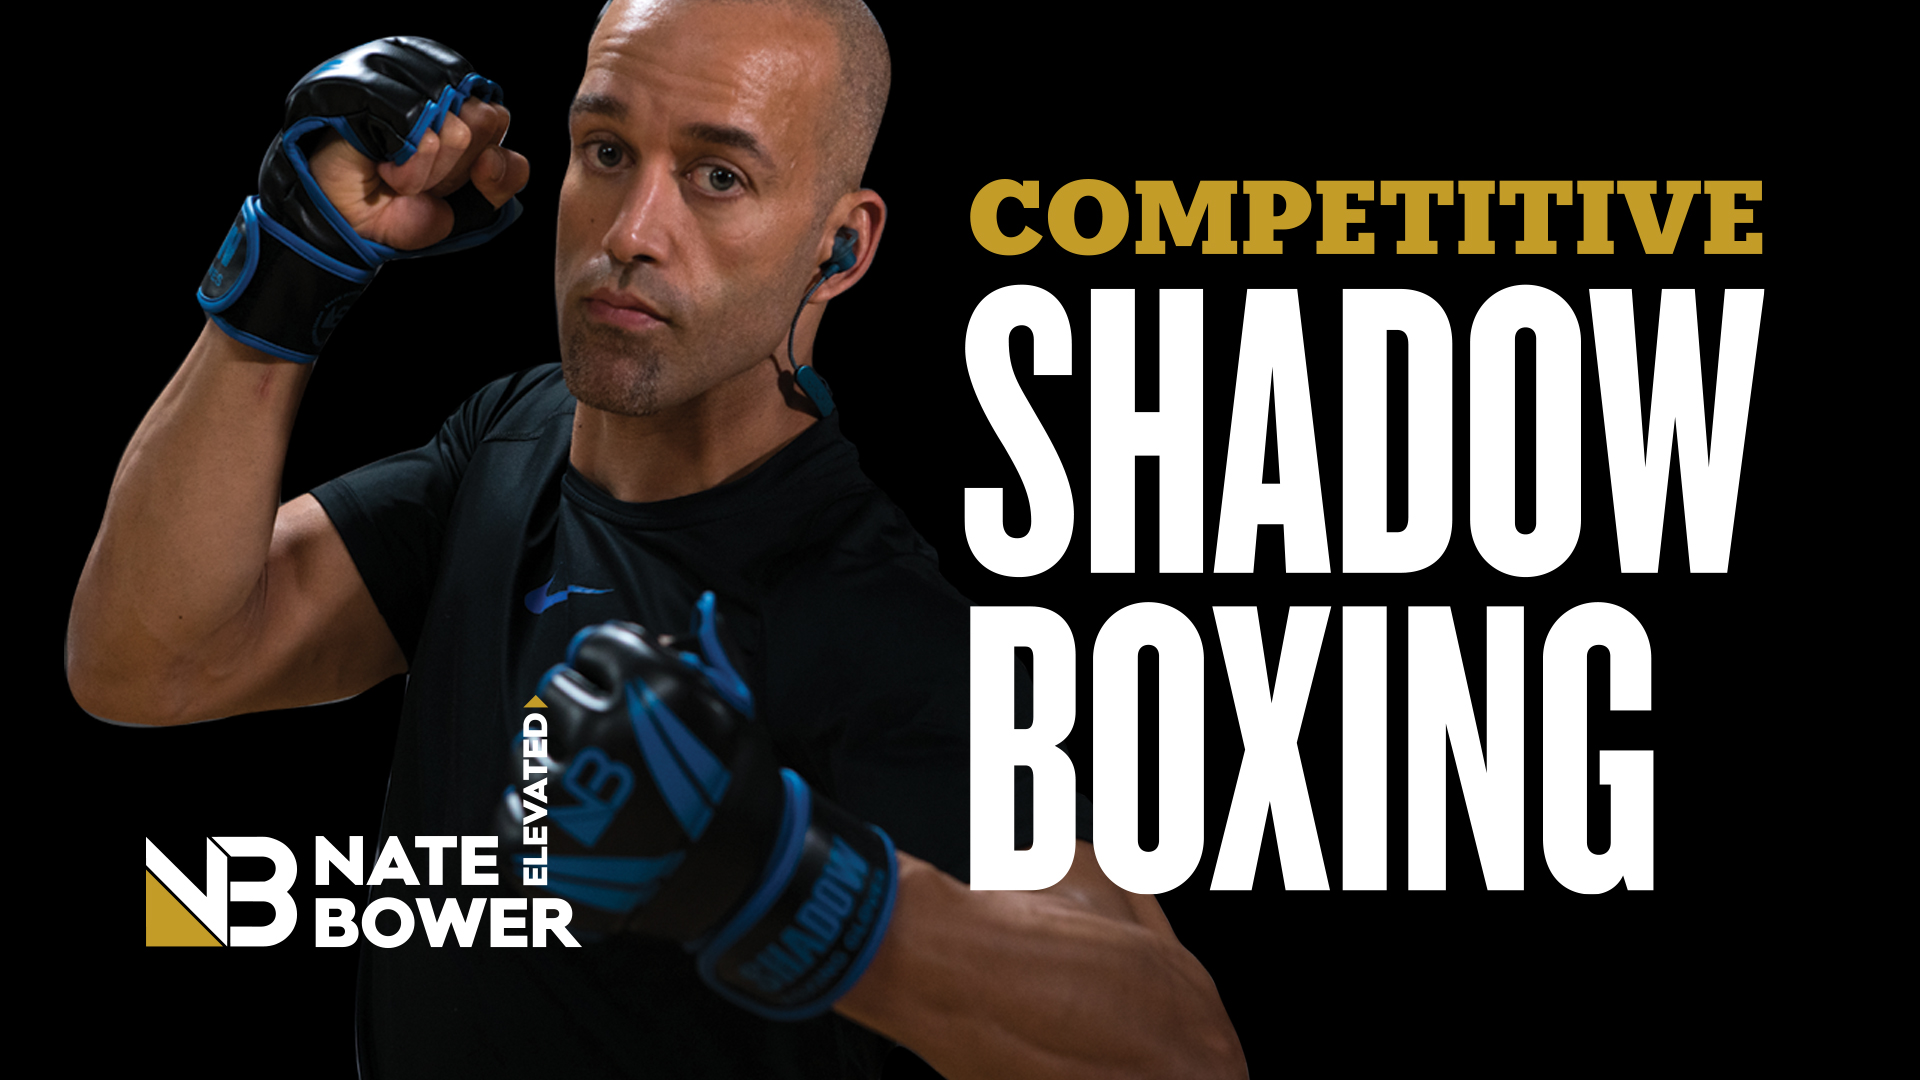 Competative Shadow Boxing